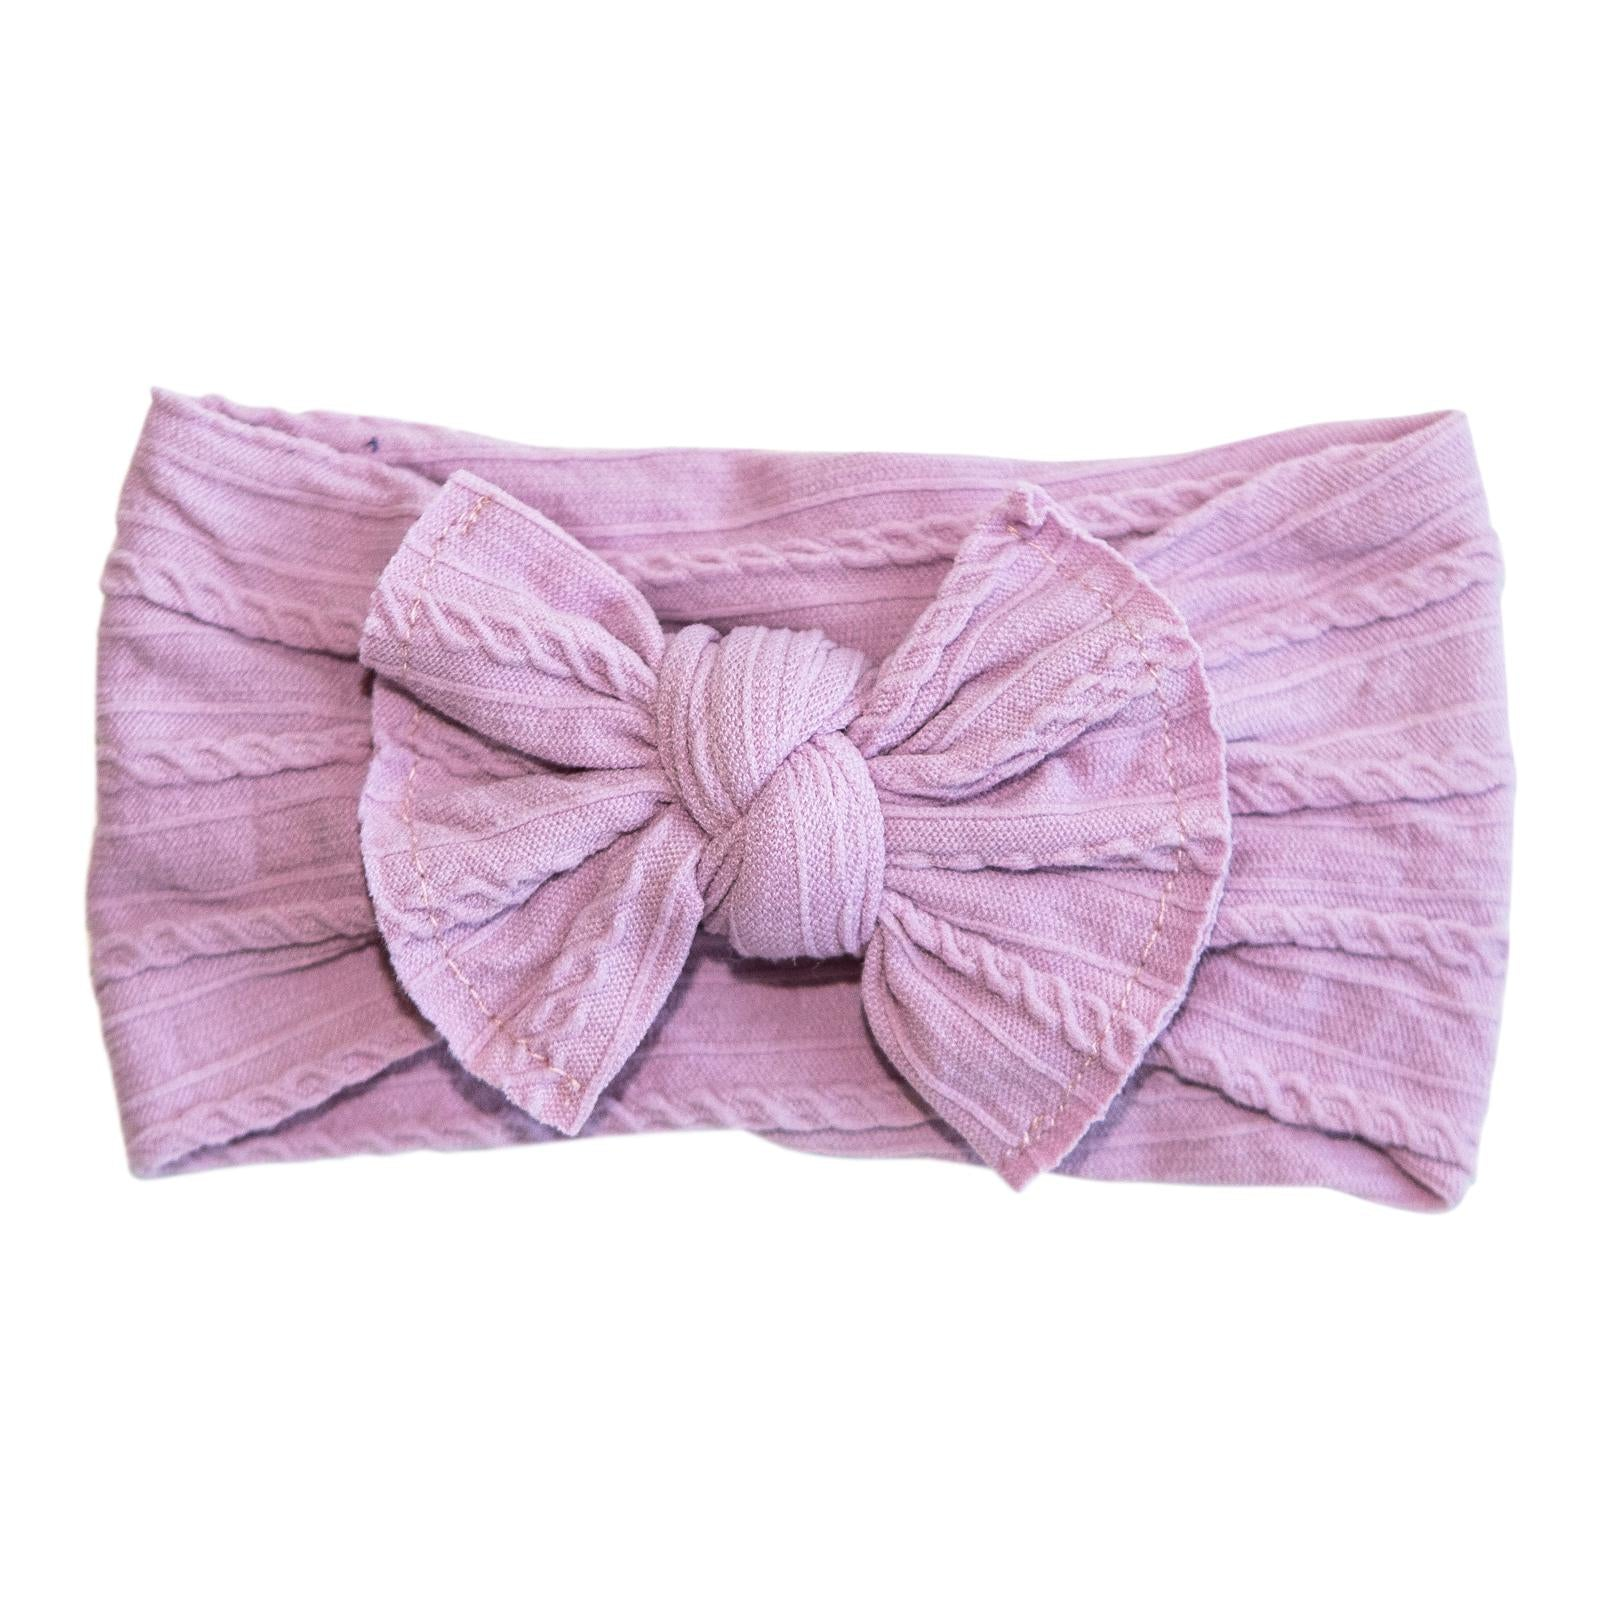 Thistle Cable Knit Nylon Headwrap-Mila & Rose ®